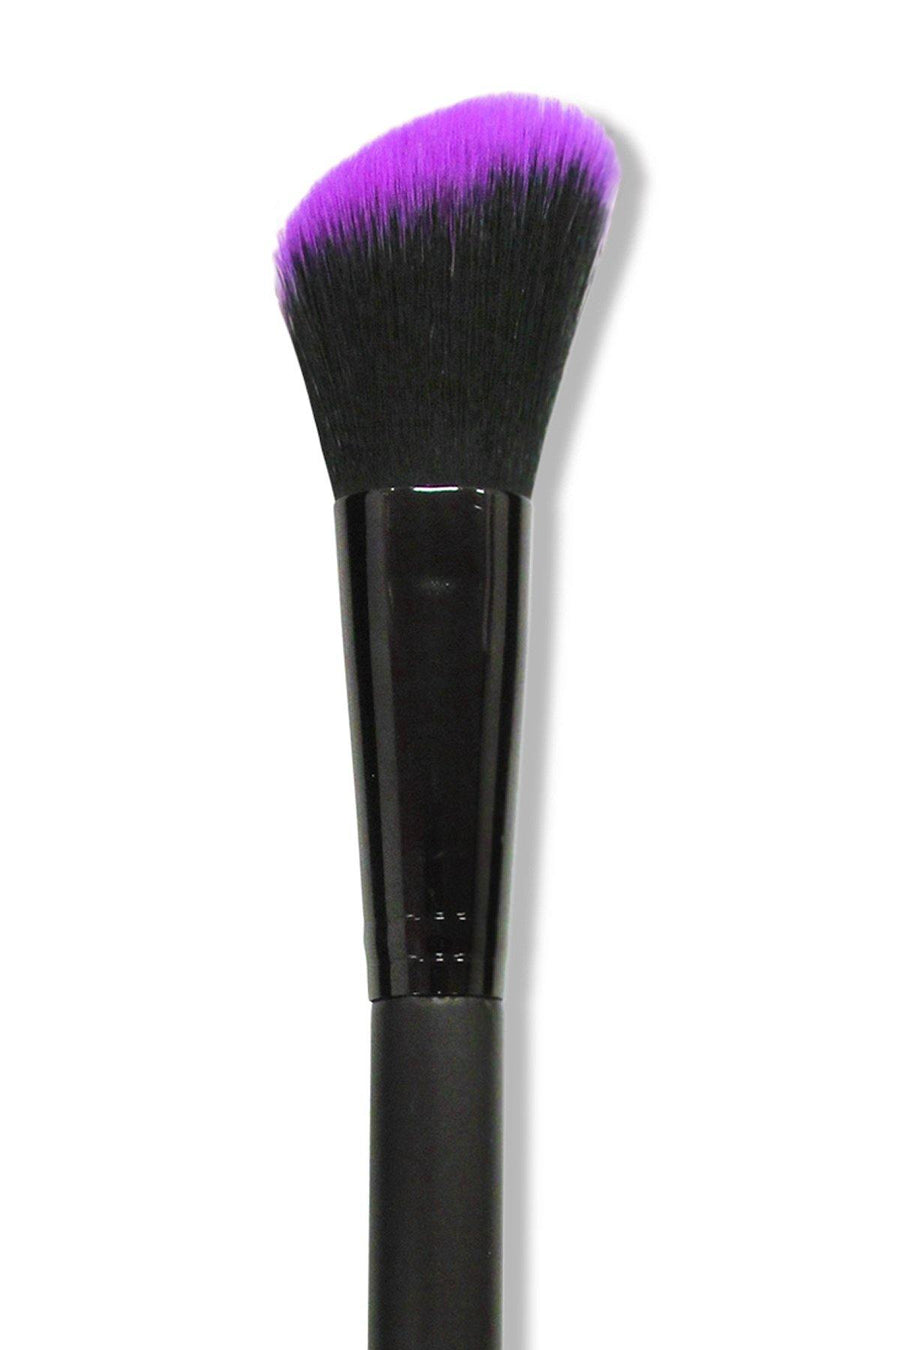 Blush Brush - Purple - Blend Mineral Cosmetics